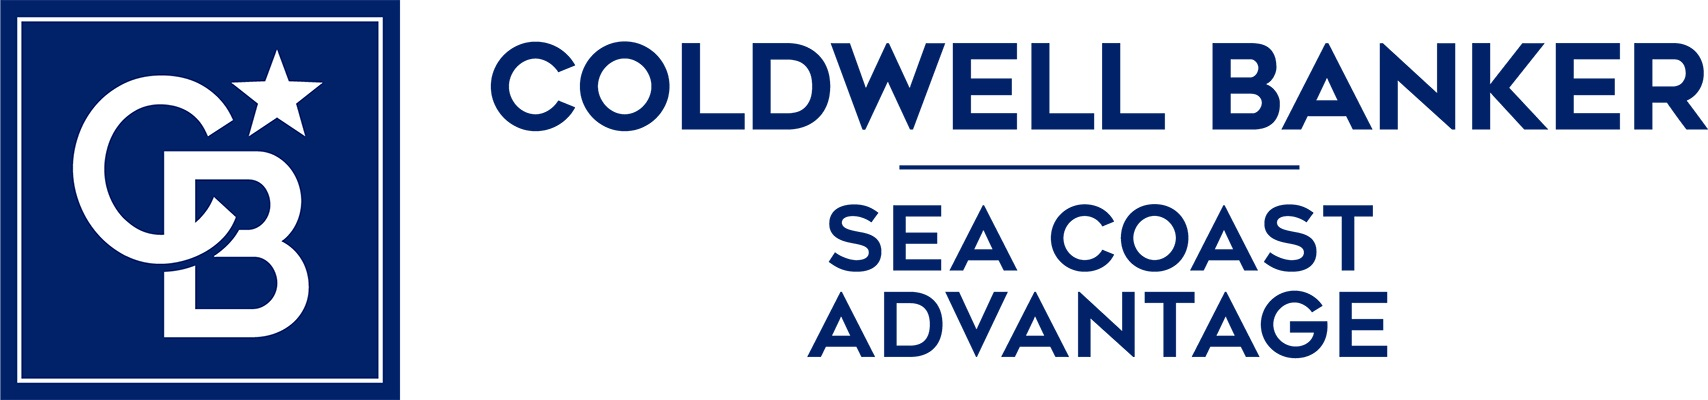 Jodi Crumpler - Coldwell Banker Sea Coast Advantage Realty Logo